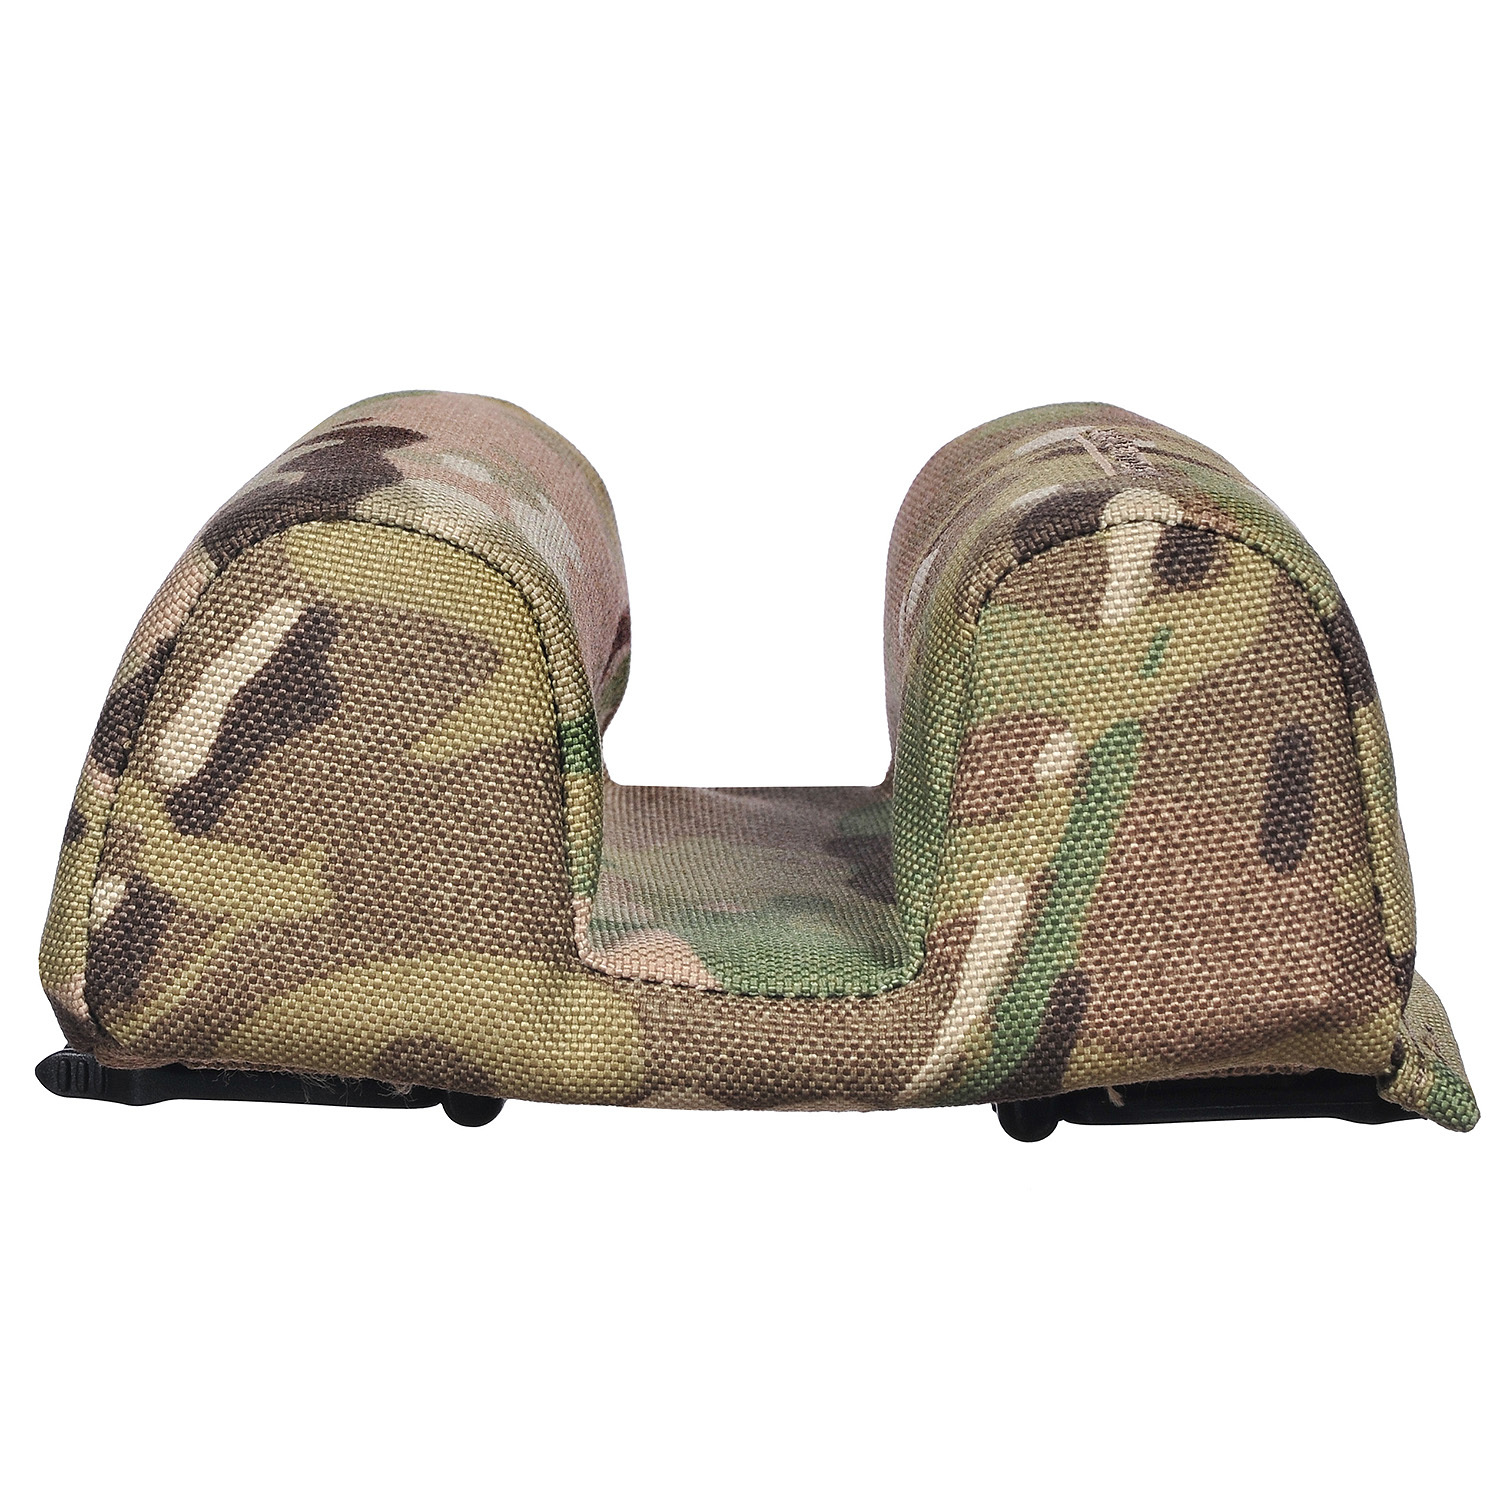 Упор для стрельбы Pack Mounted Shooting Rest Eberlestok, цвет – Coyote Brown